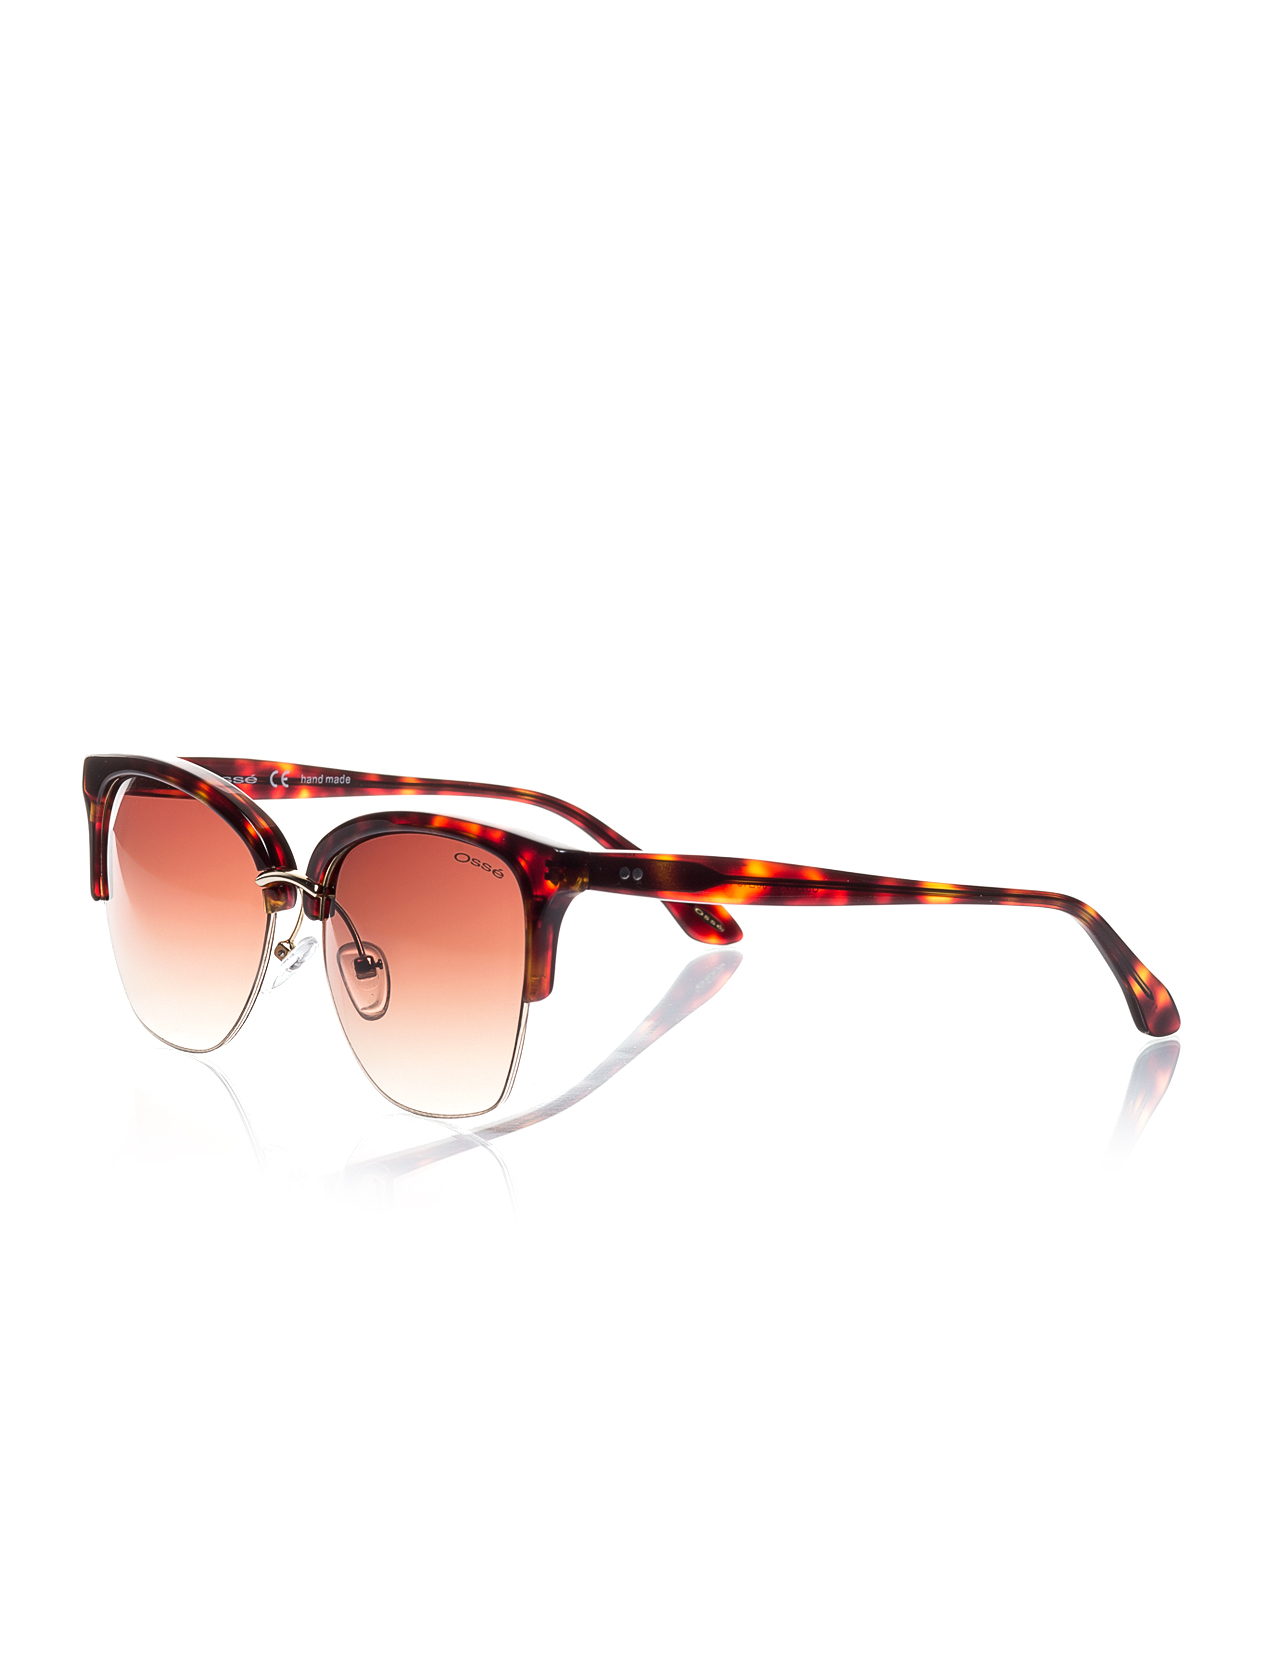 Women's sunglasses os 2117 02 clubmaster Brown organic oval aval 56-15-142 osse